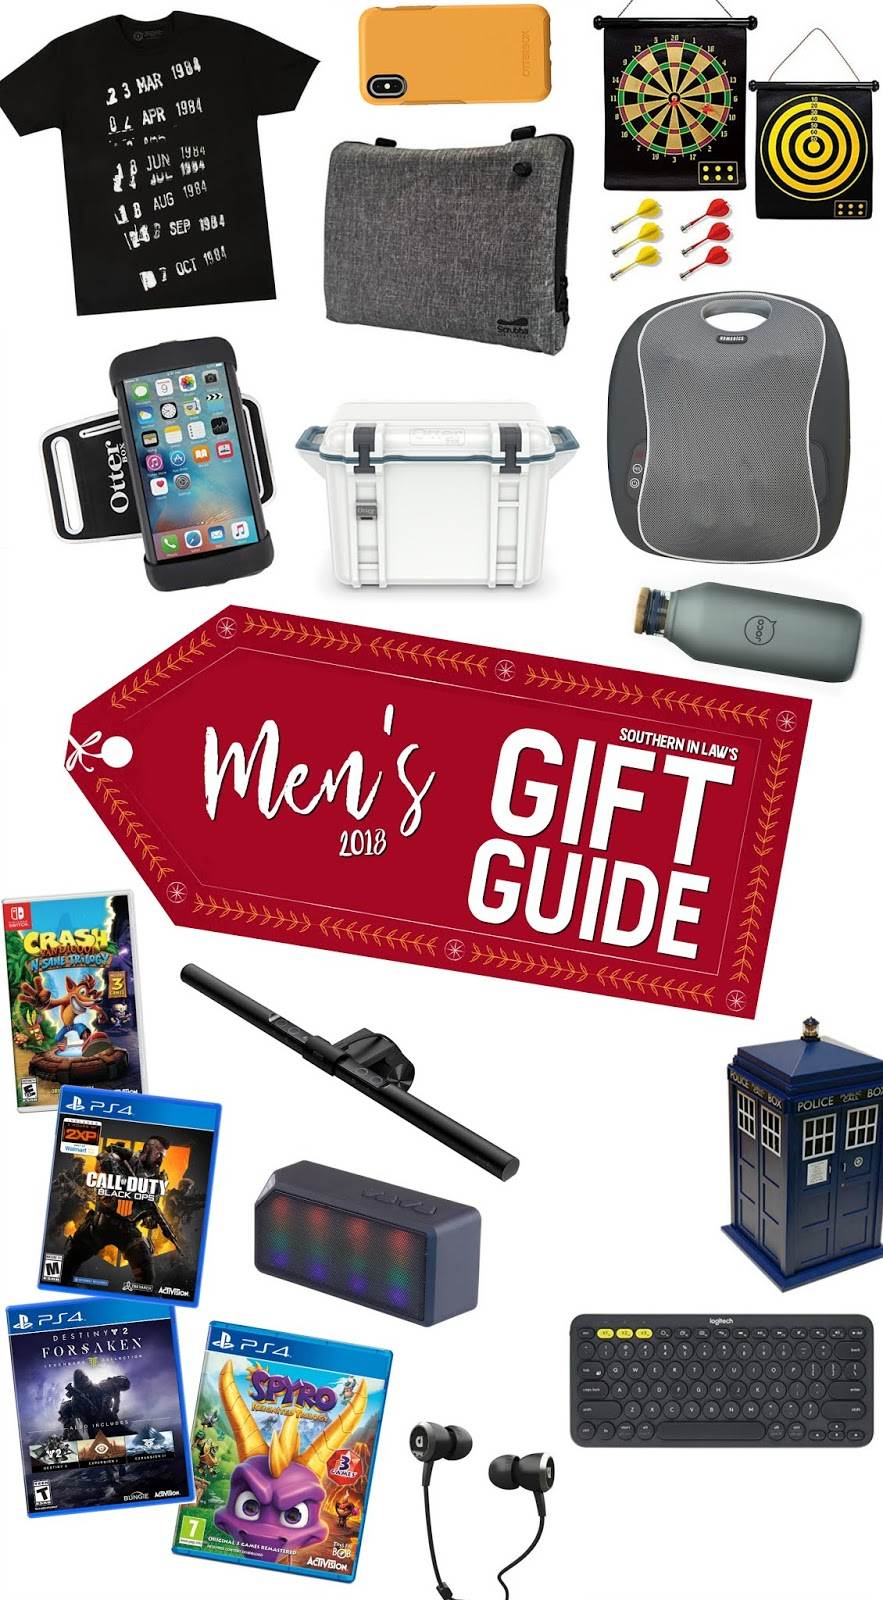 Southern In Law's Men's Christmas Gift Guide 2018